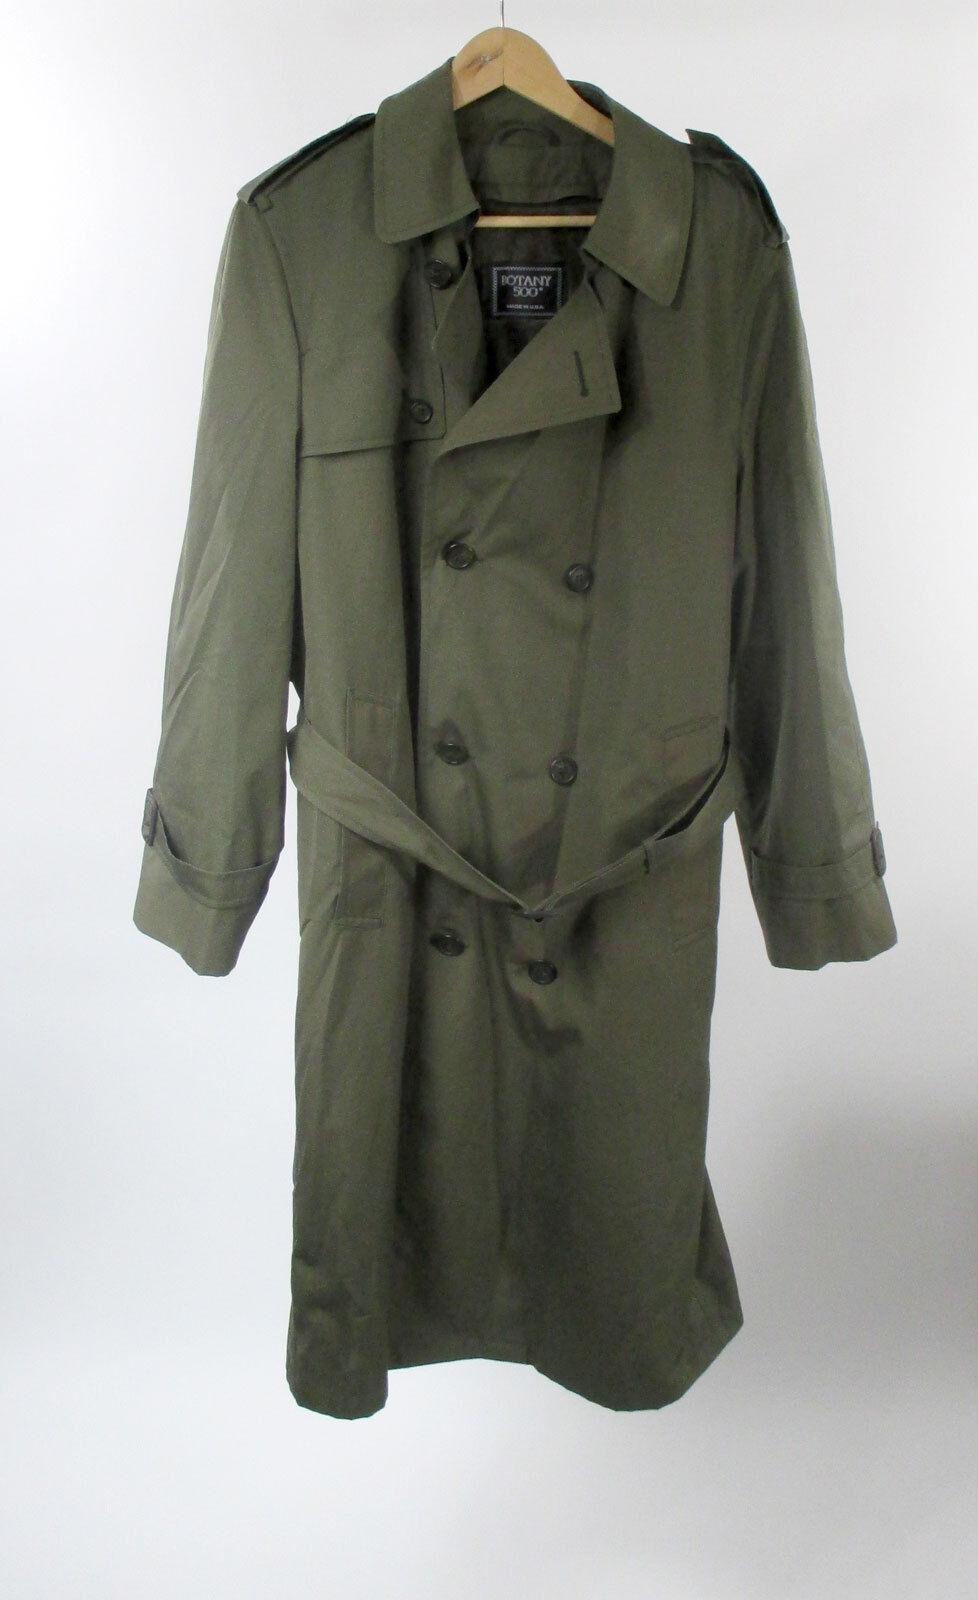 Botany 500 Olive Grün Removable Faux Fur Liner Trench Coat Sz 38R Made in  USA